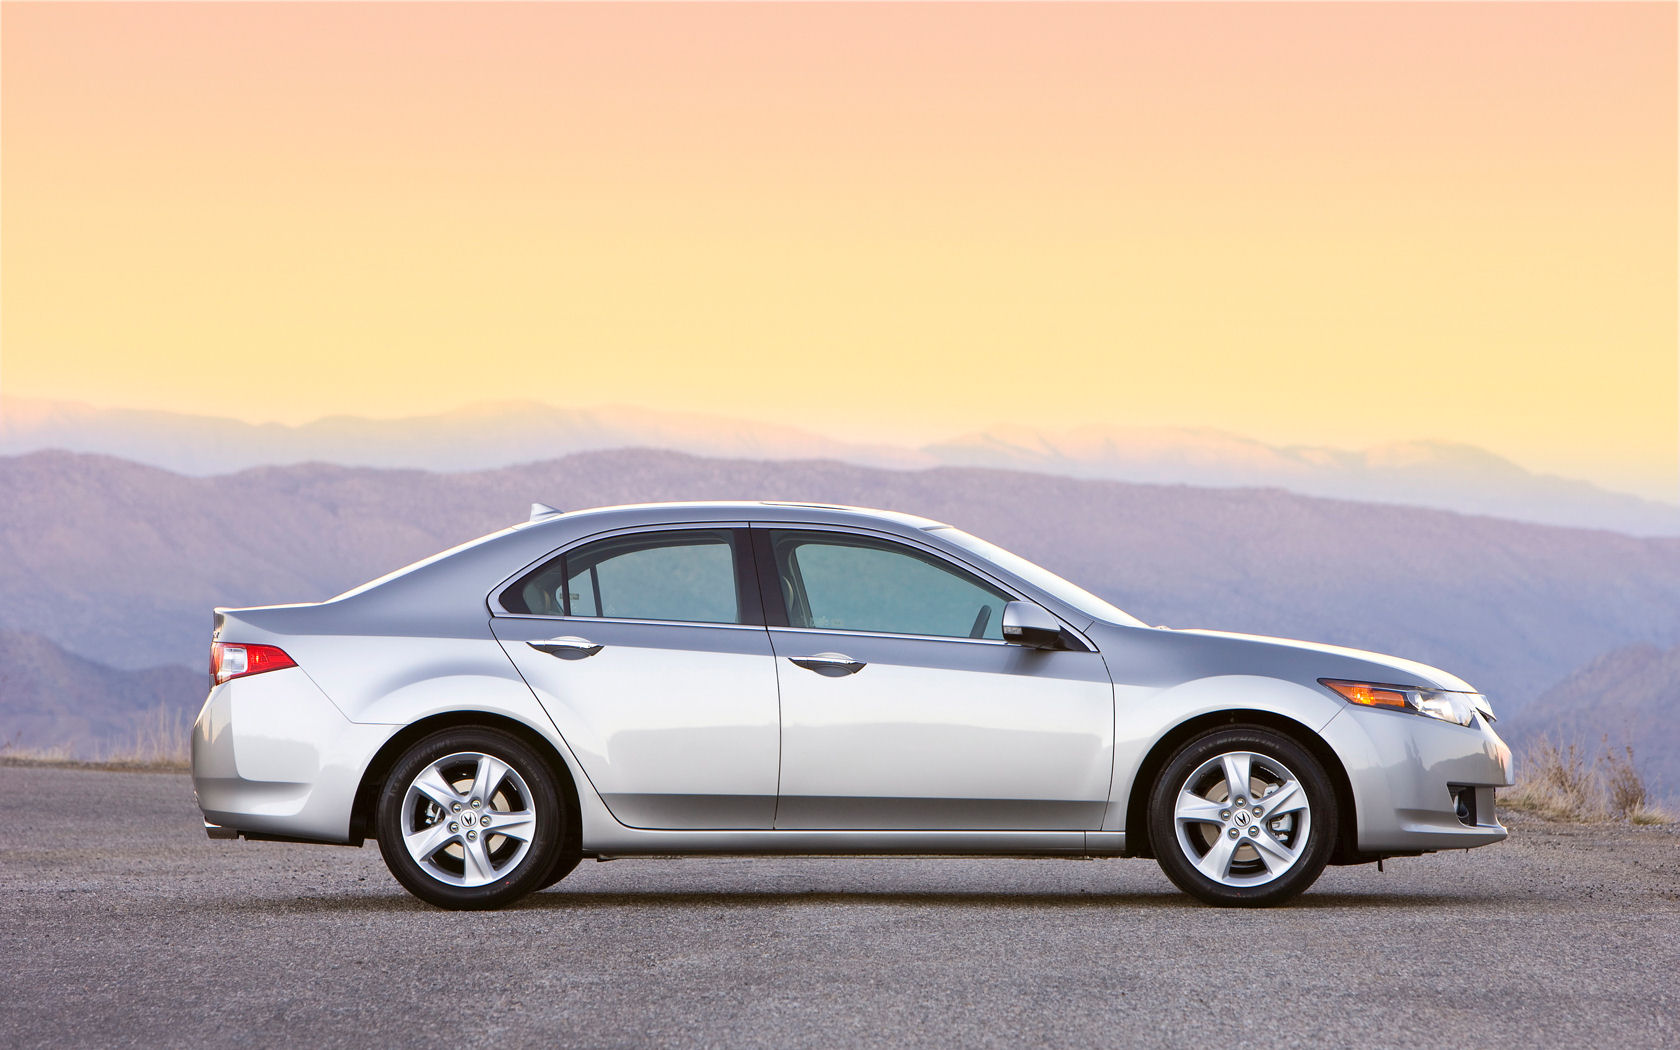 Acura Tsx V6 Free Widescreen Wallpaper Desktop Background Picture